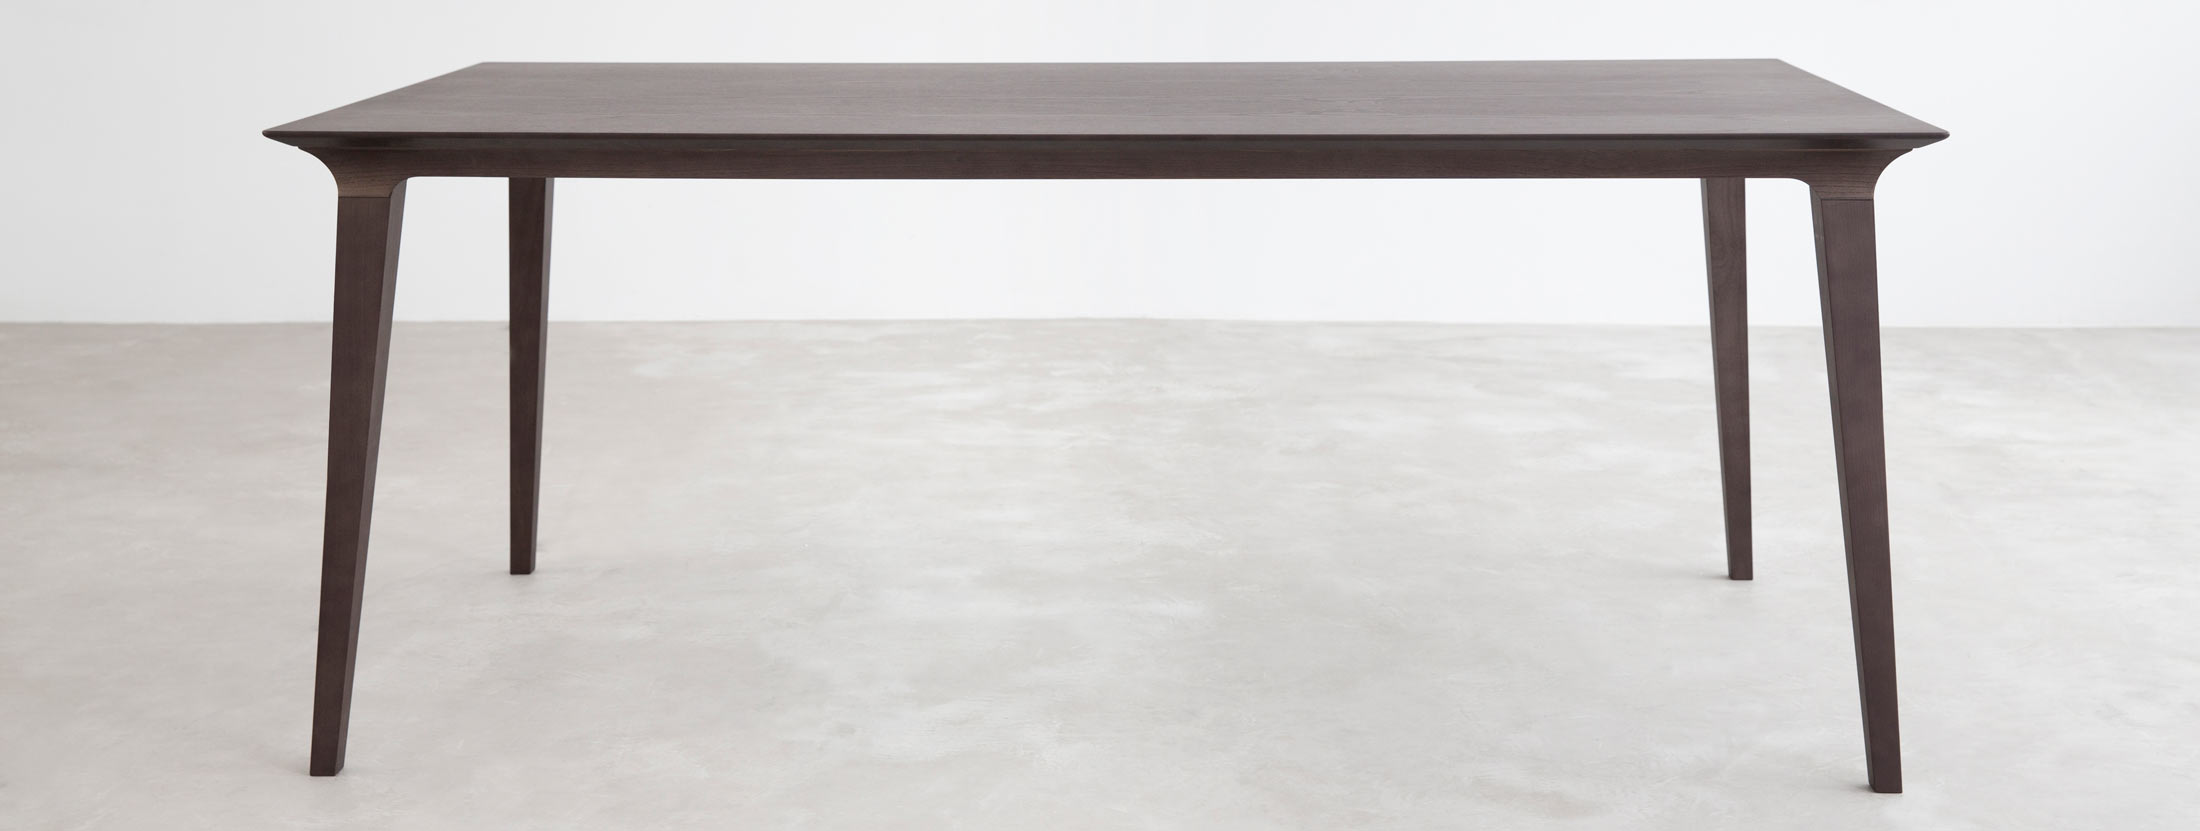 Lau Dining Table by Stua